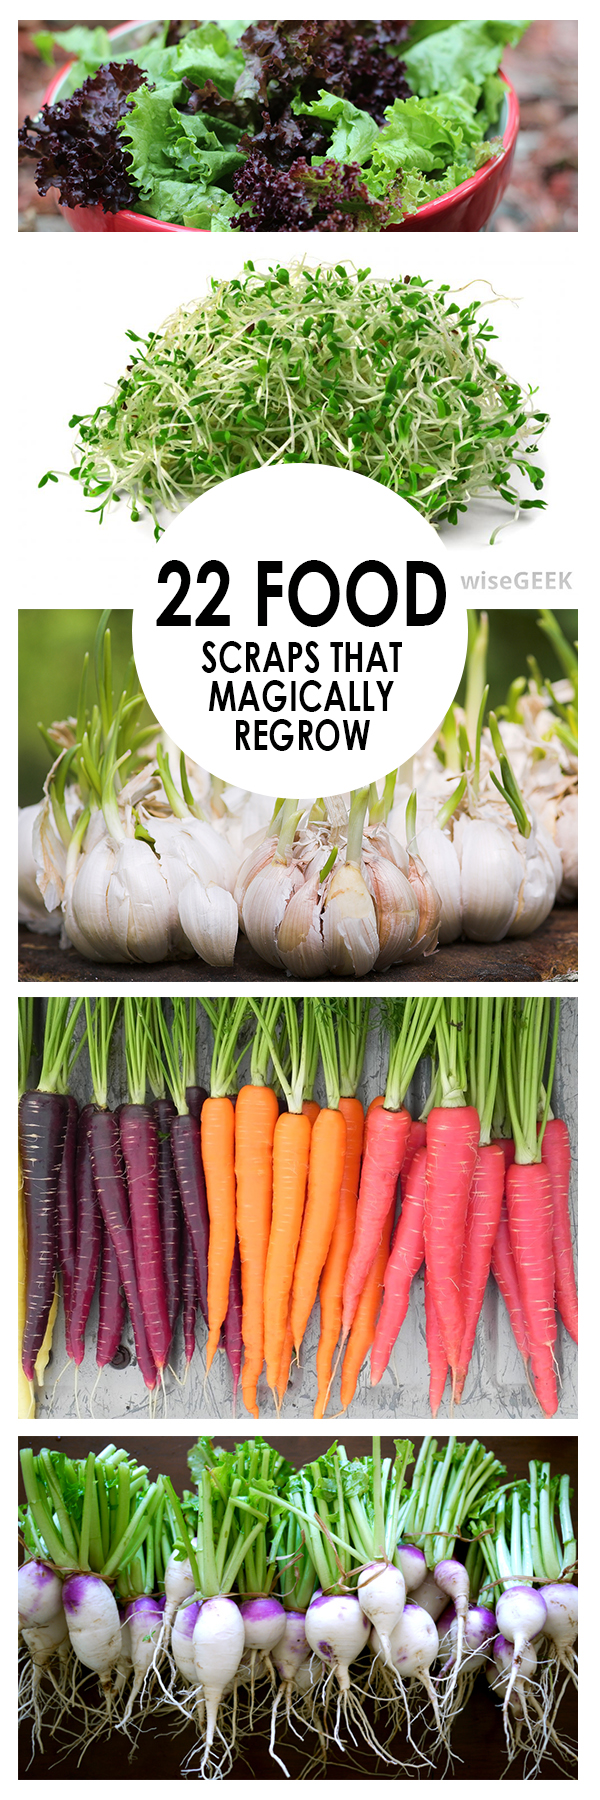 Food Scraps, Food that Regrows, Food Regrow, Vegetable garden, Vegetable gardening, vegetable propagation